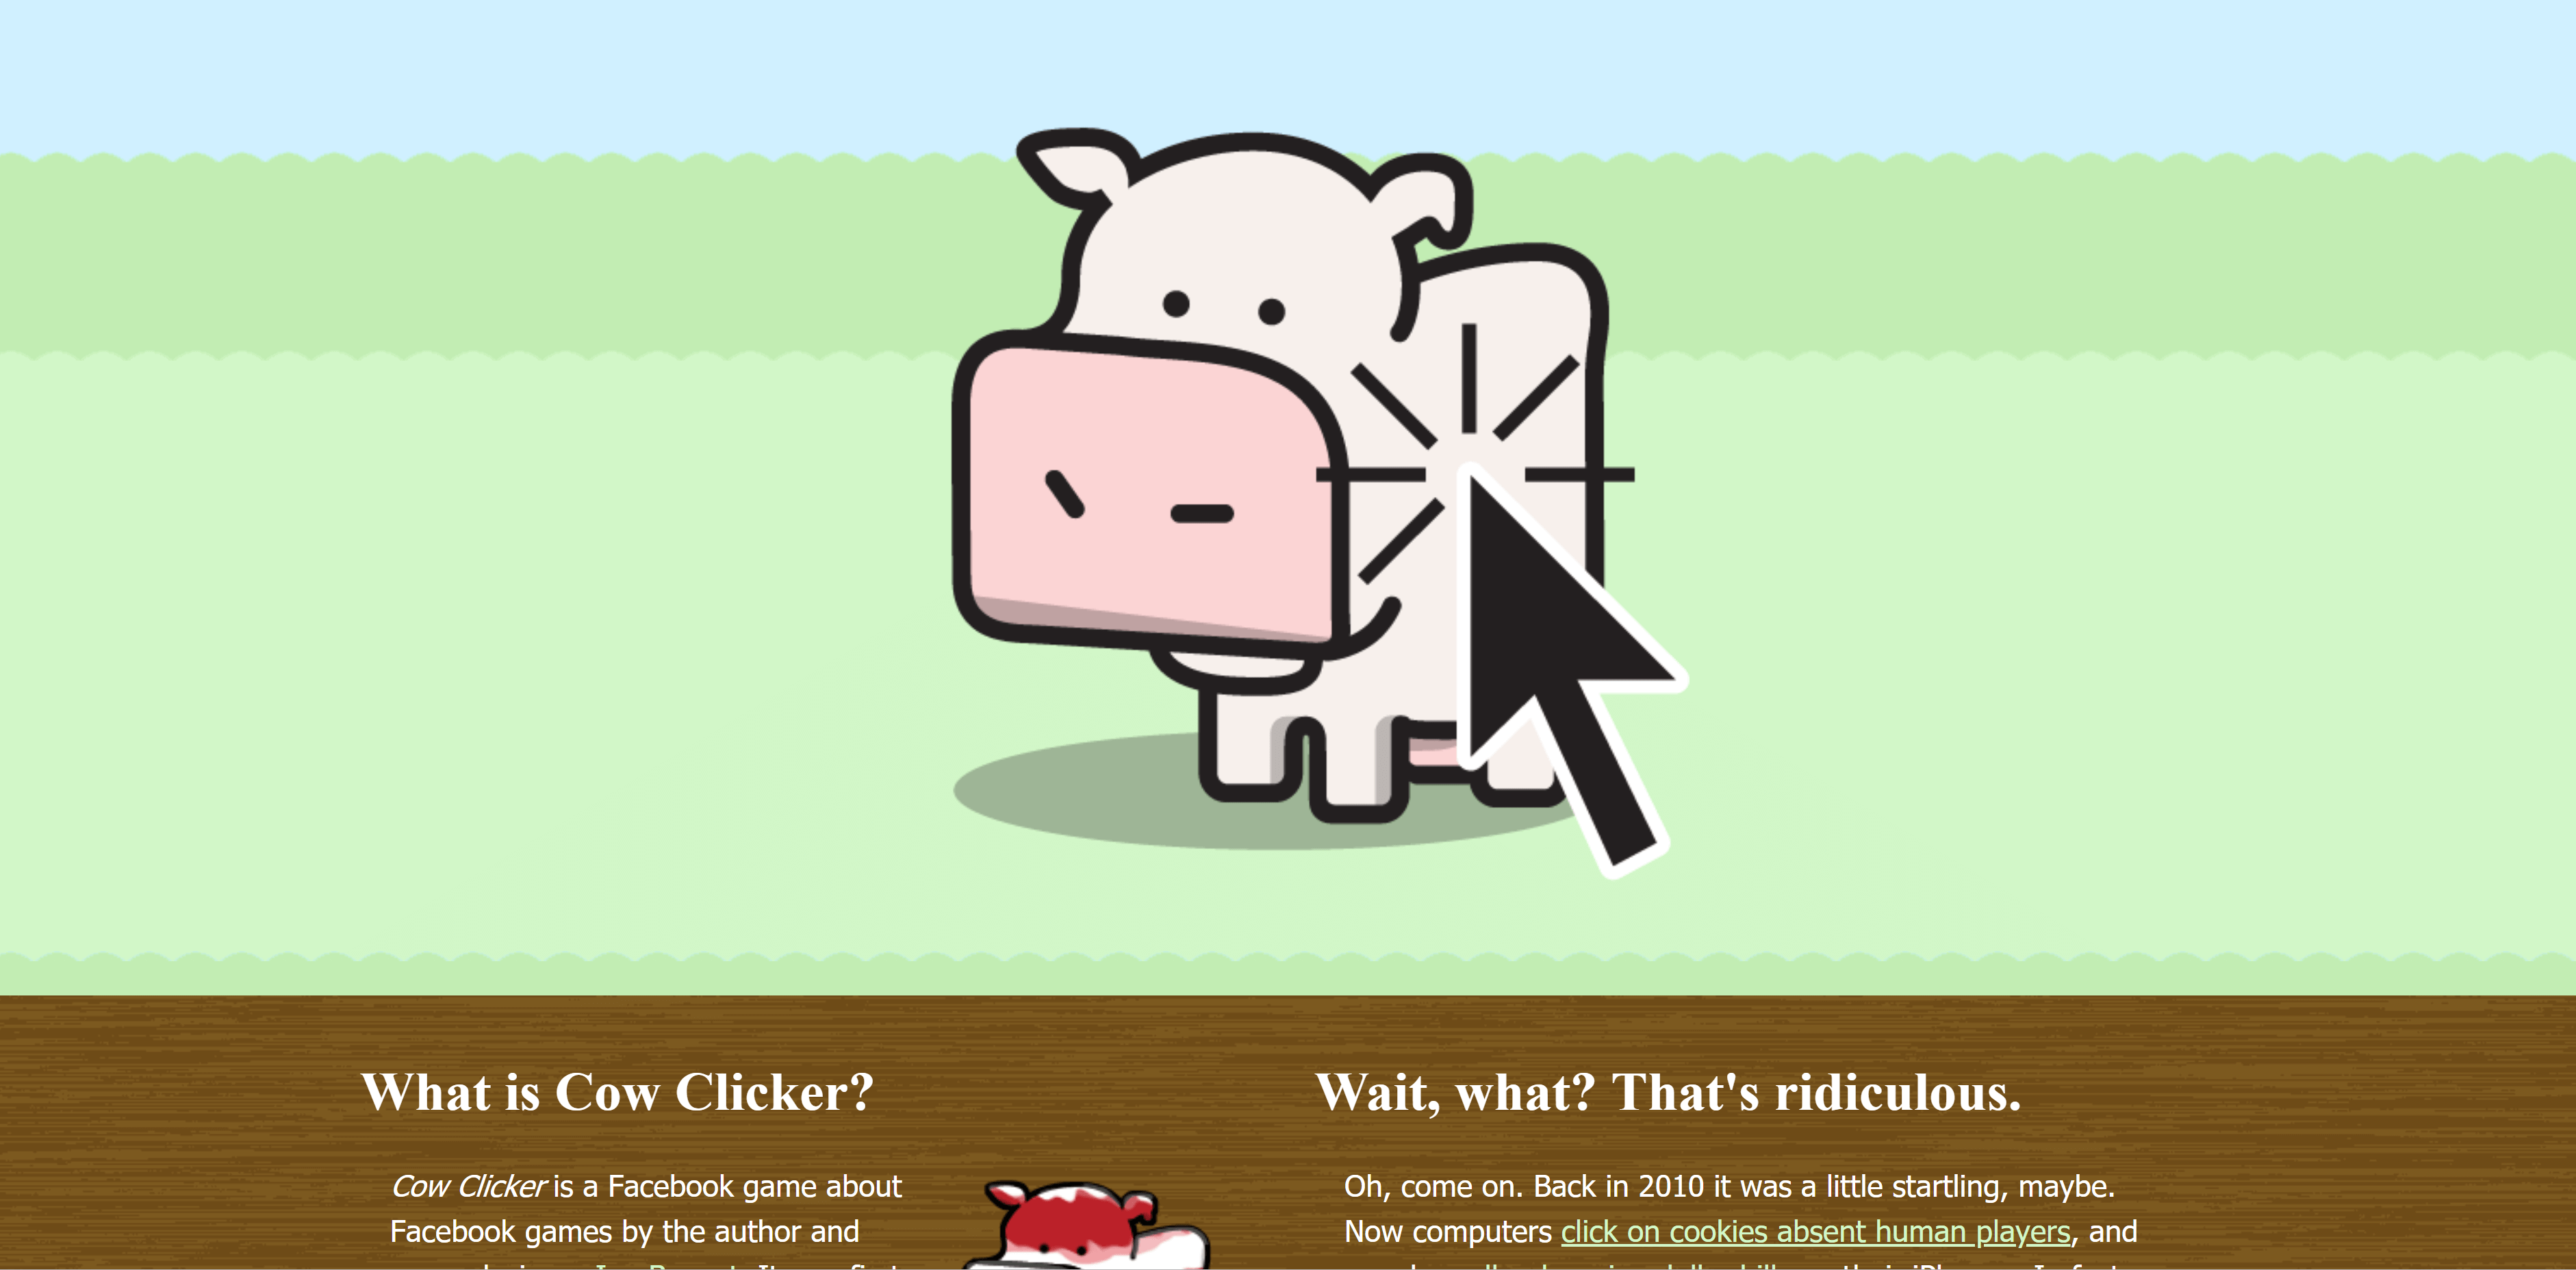 Ian Bogost's Runaway hit idle game parody, Cow Clicker